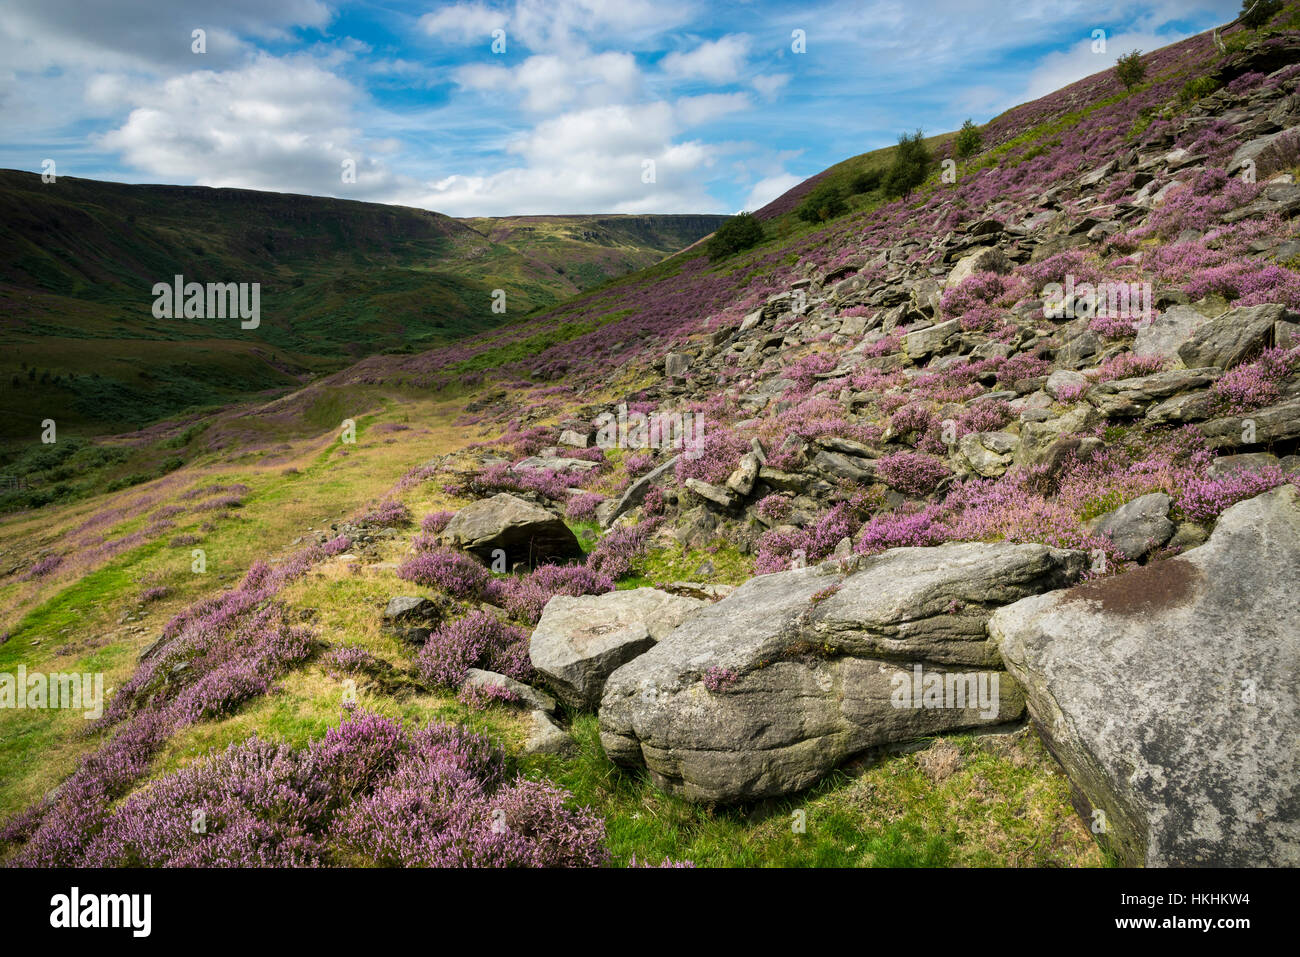 Summer at Crowden in North Derbyshire. Purple heather blooming around rocks in this dramatic and rugged landscape. - Stock Image